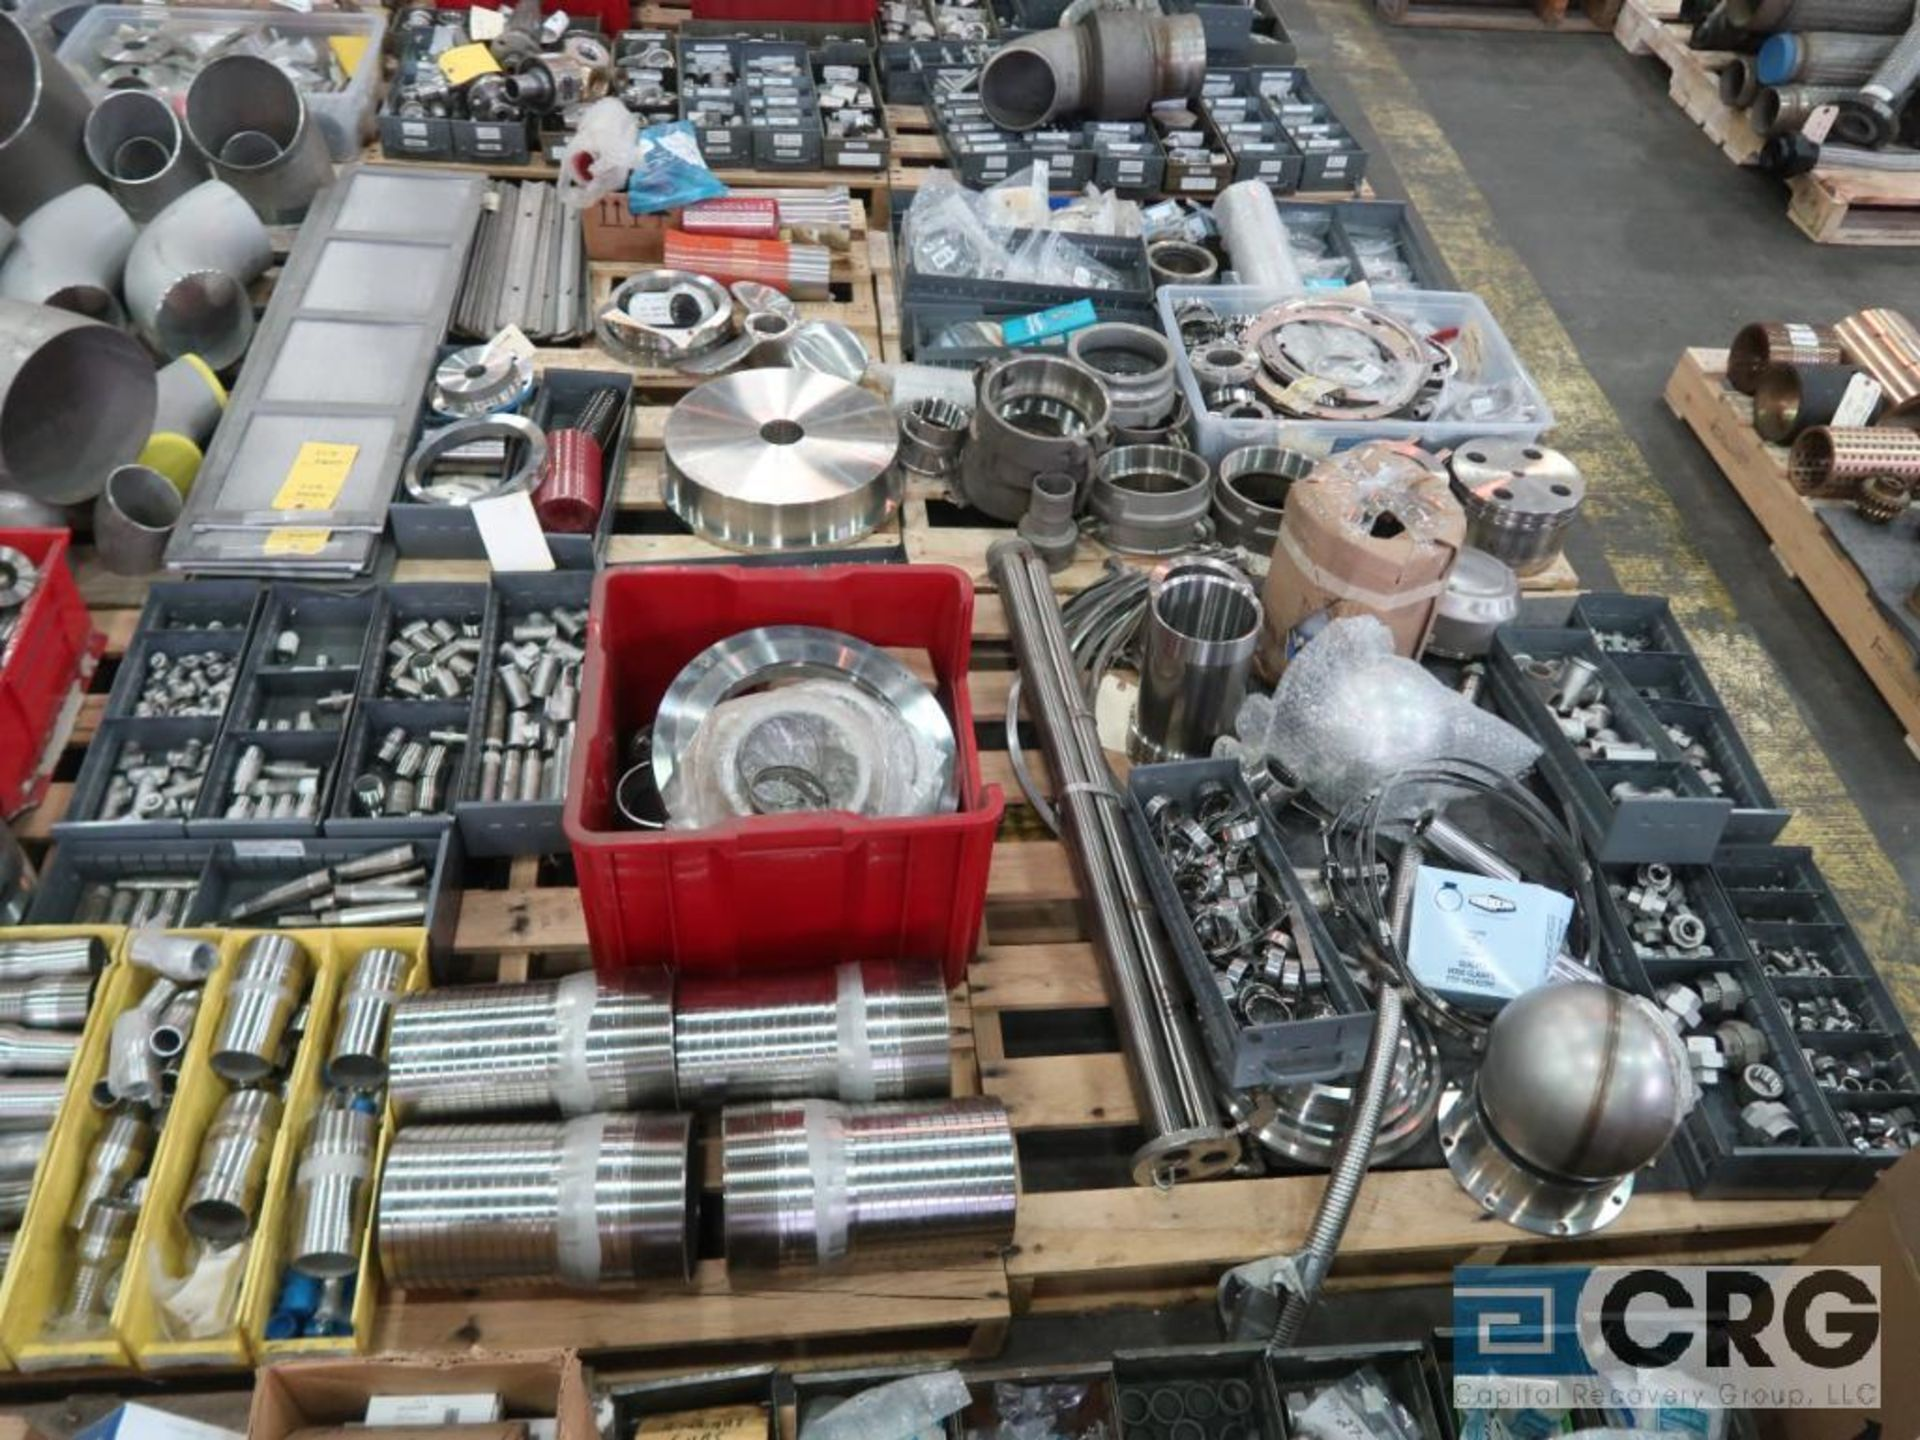 Lot of (14) pallets of stainless fittings, clamsps, couplers, and flanges (Finish Building) - Image 5 of 5